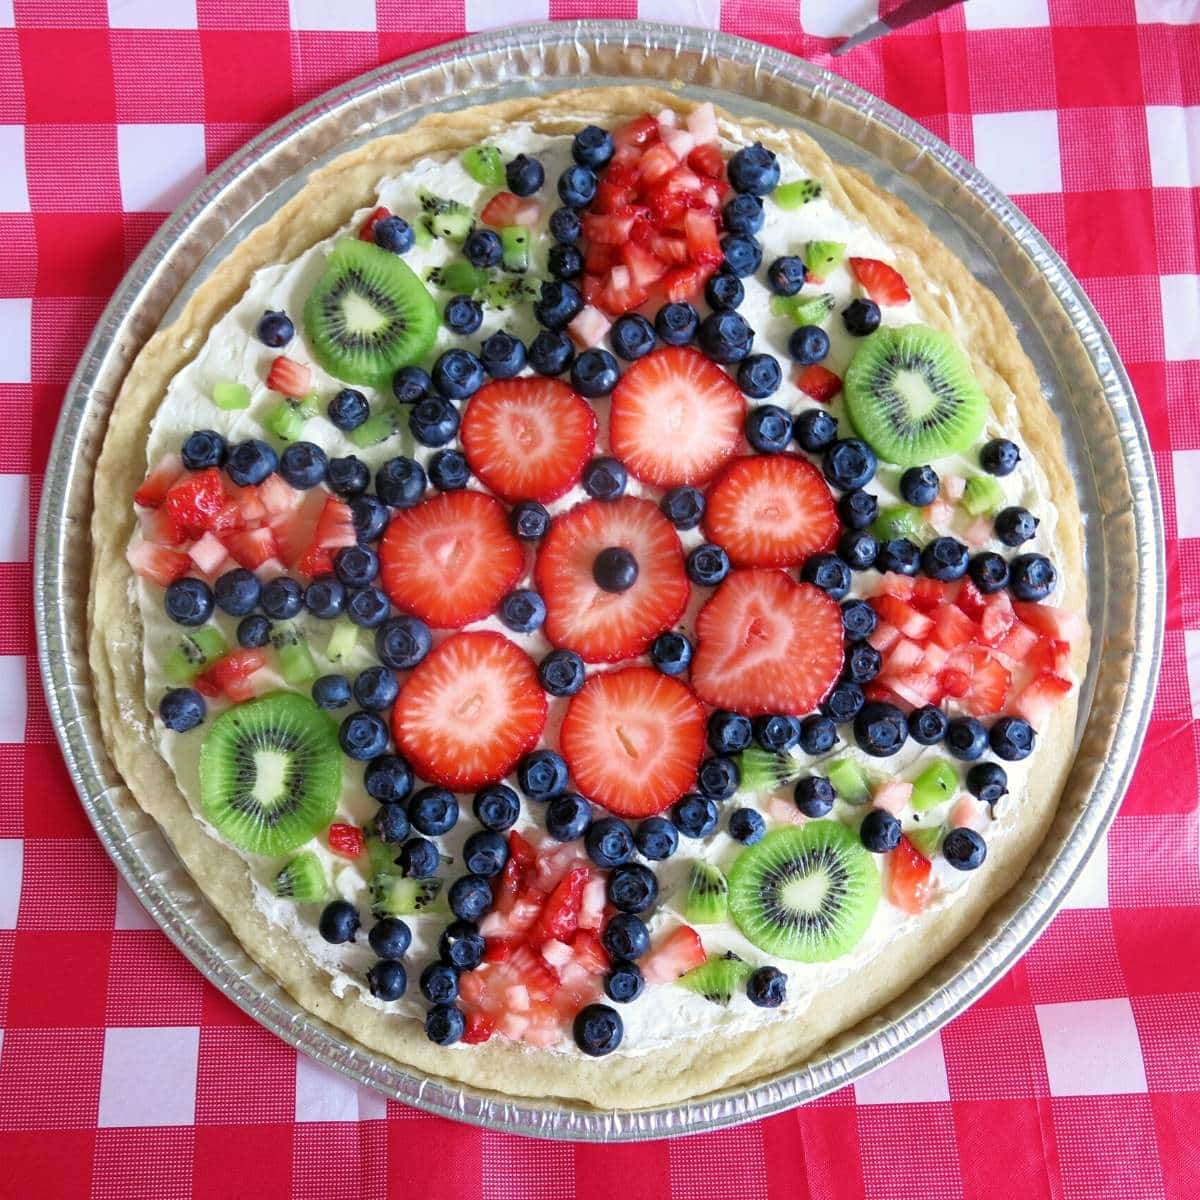 Color pizza cookie topped with kiwi, strawberries and blueberries.